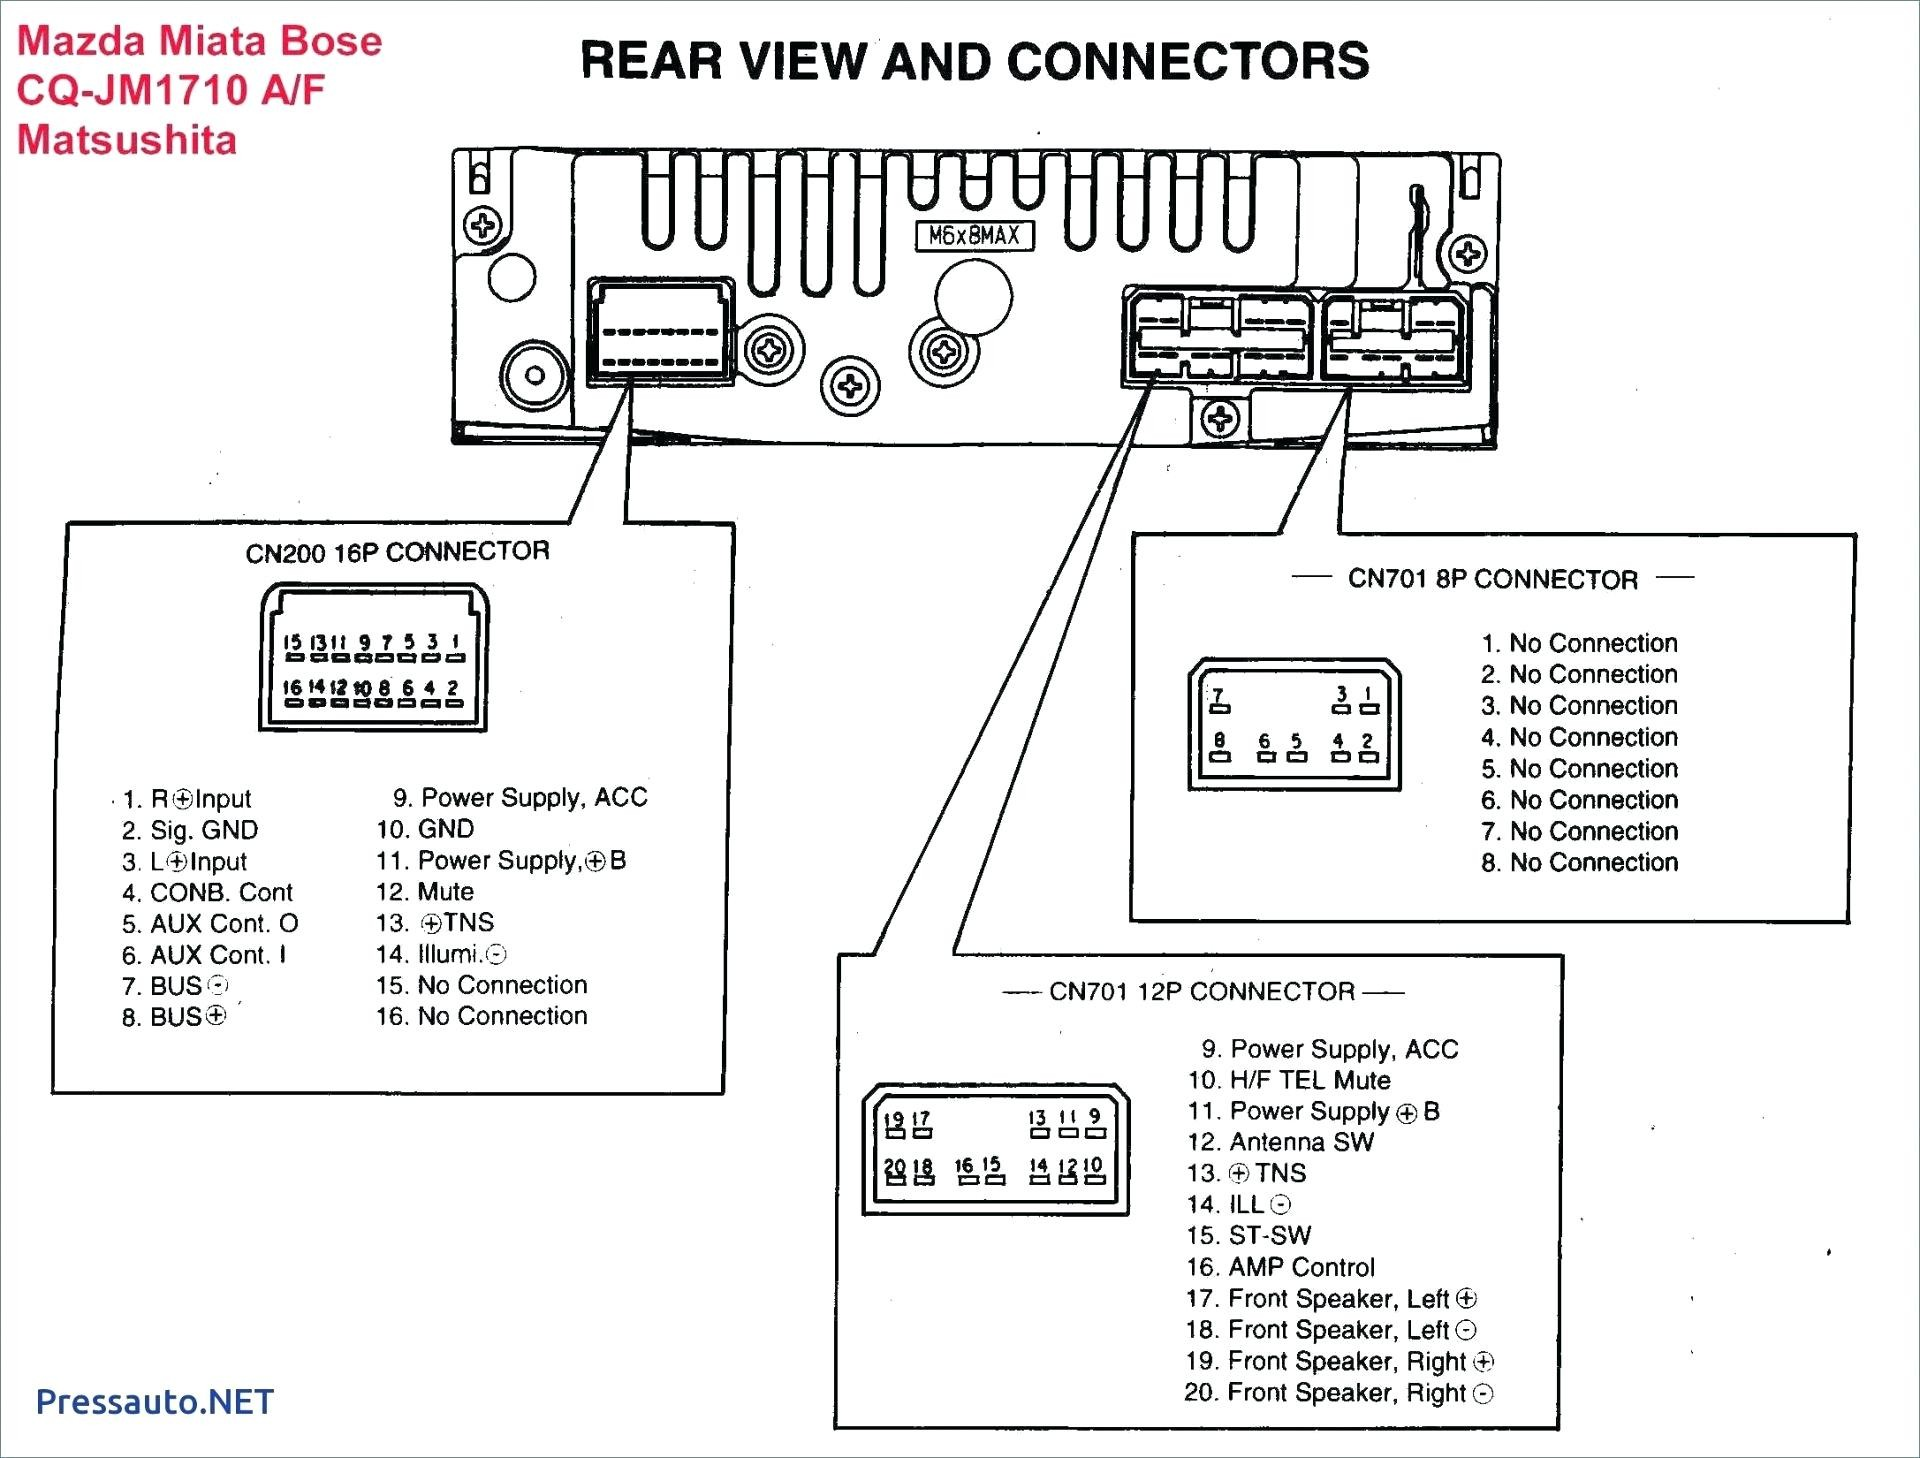 Car Amplifier Connection Diagram How to Wire A 5 Channel Amp Diagram Copy 4 Channel and Wiring Of Car Amplifier Connection Diagram